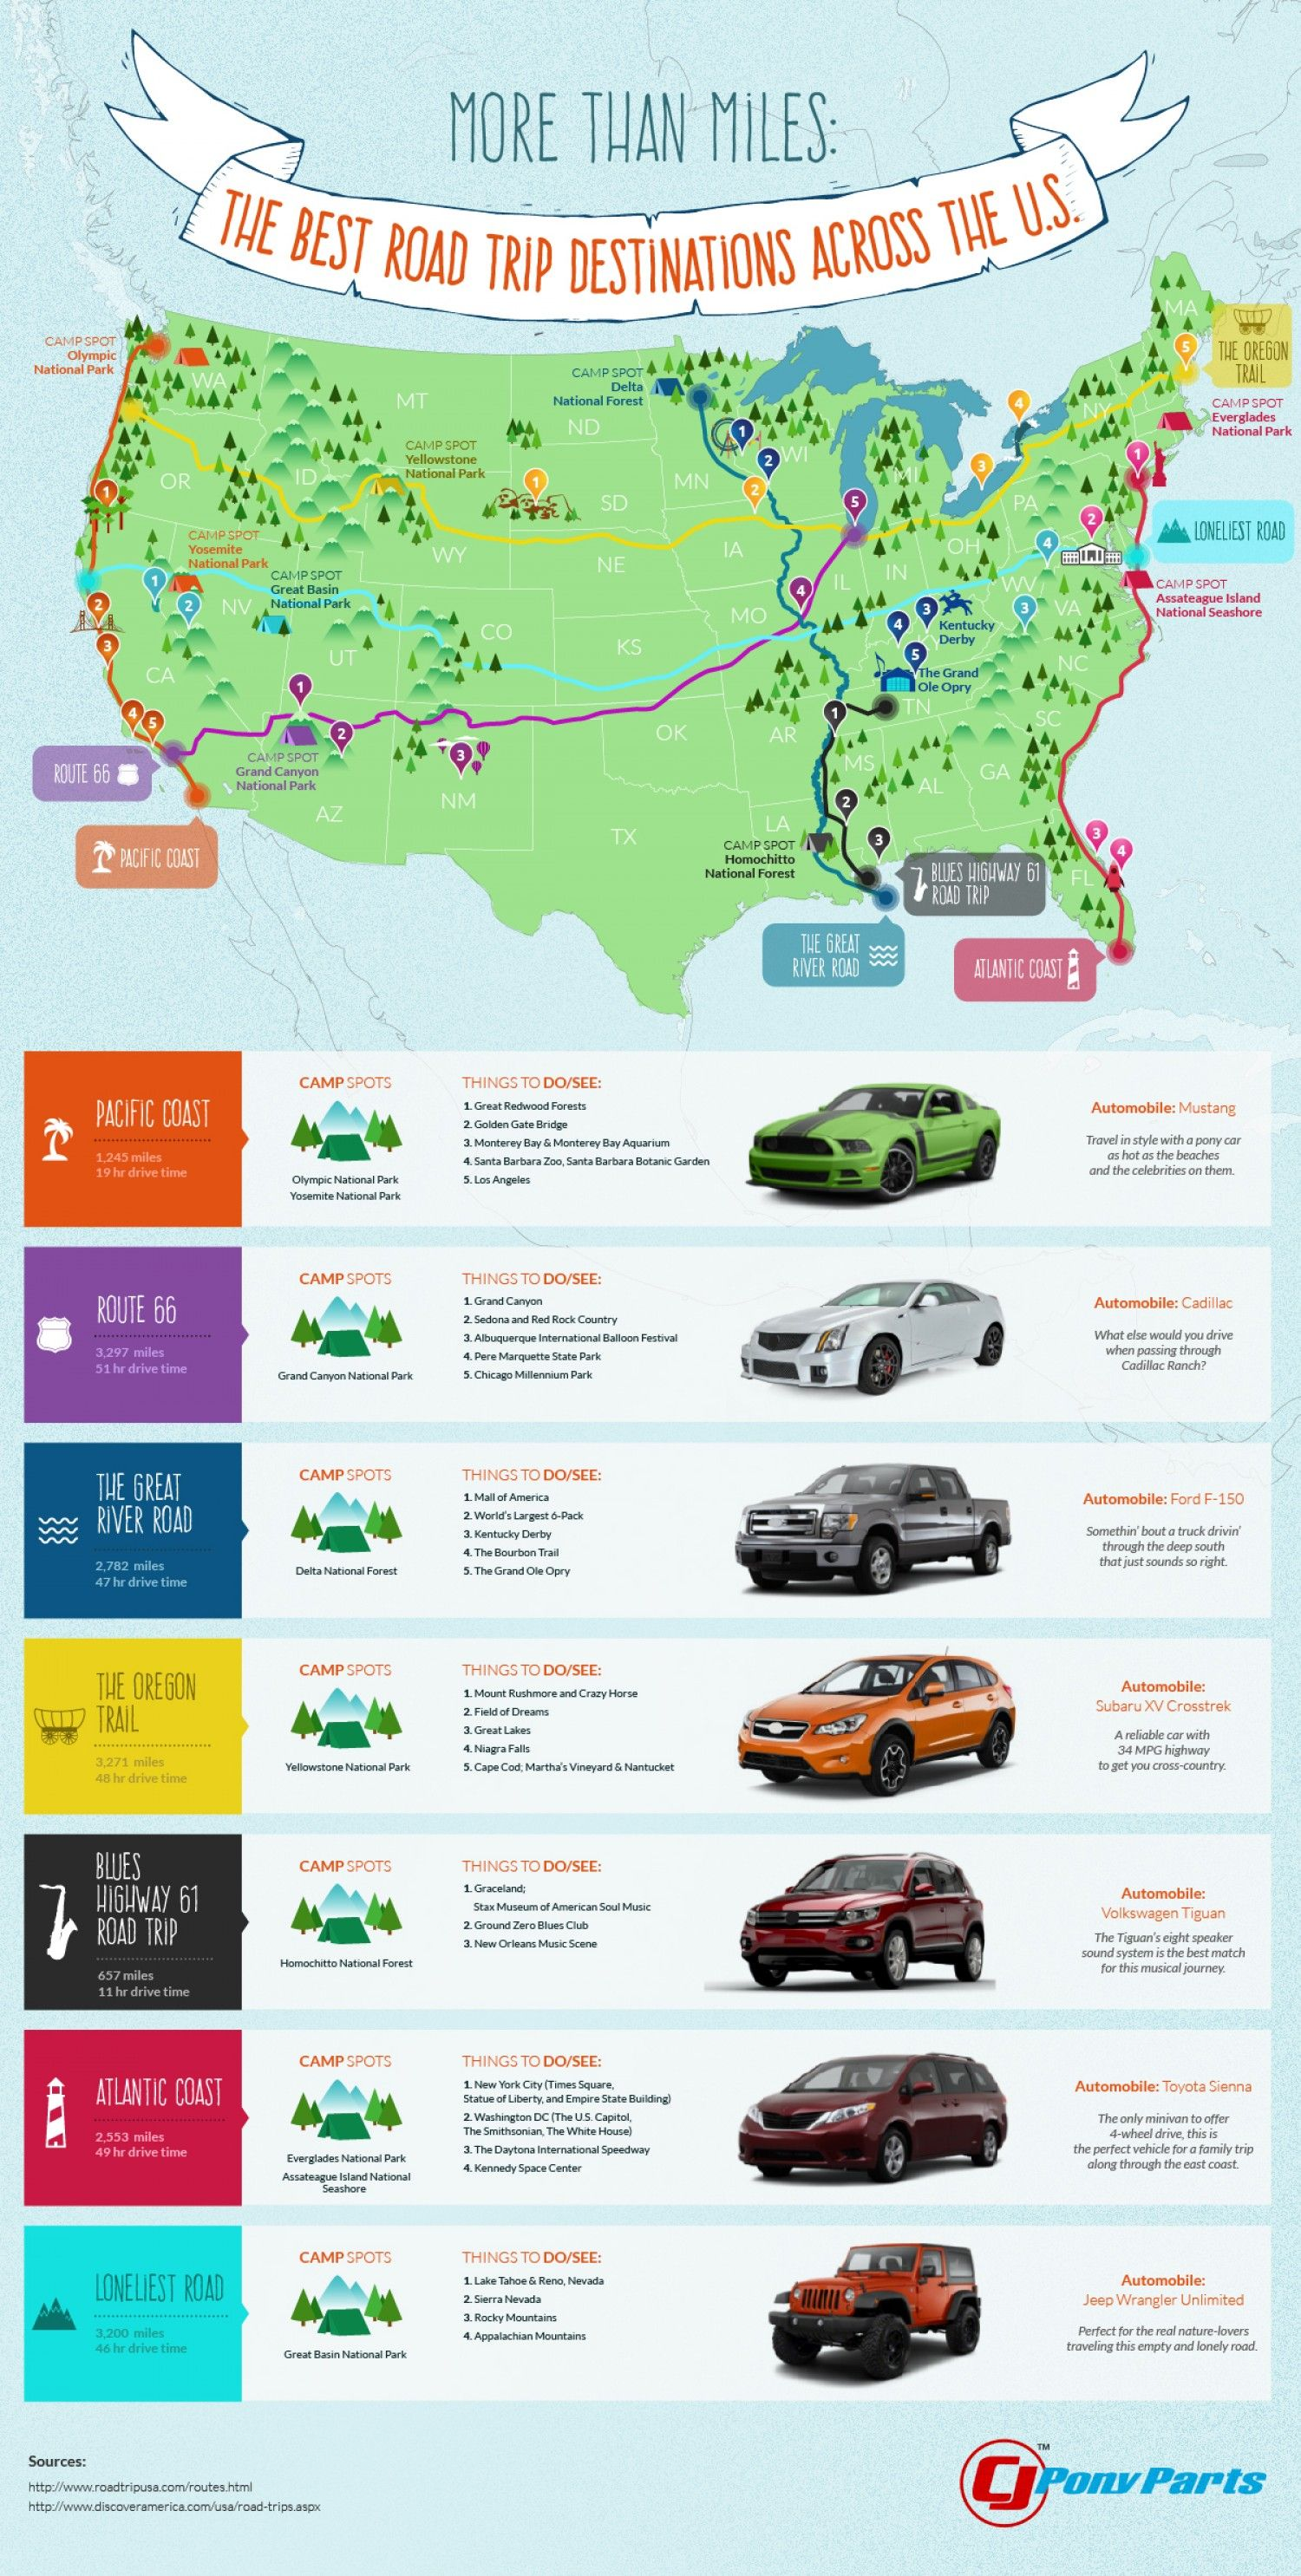 Best Road Trip Usa Map.More Than Miles The Best Road Trip Destinations Across The U S